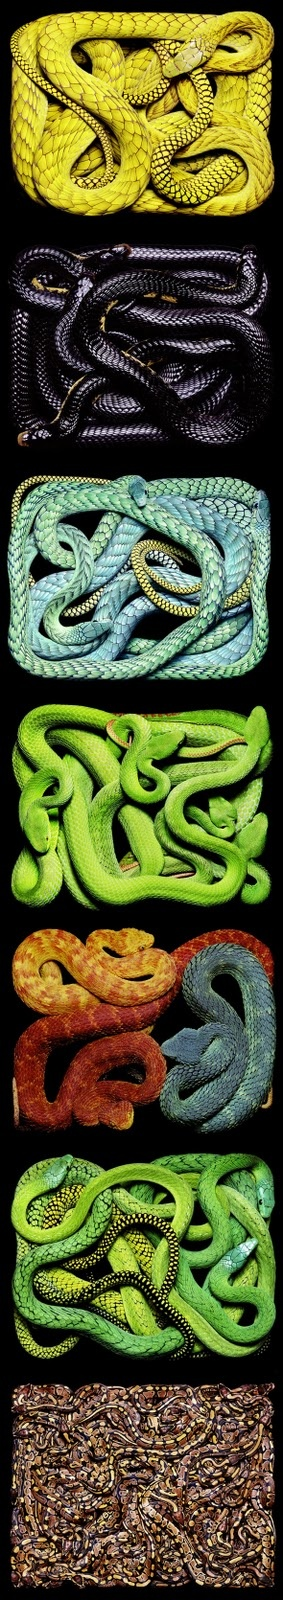 I absolutely HATE SNAKES..... but this is pretty and informative, SNAKE COLORS